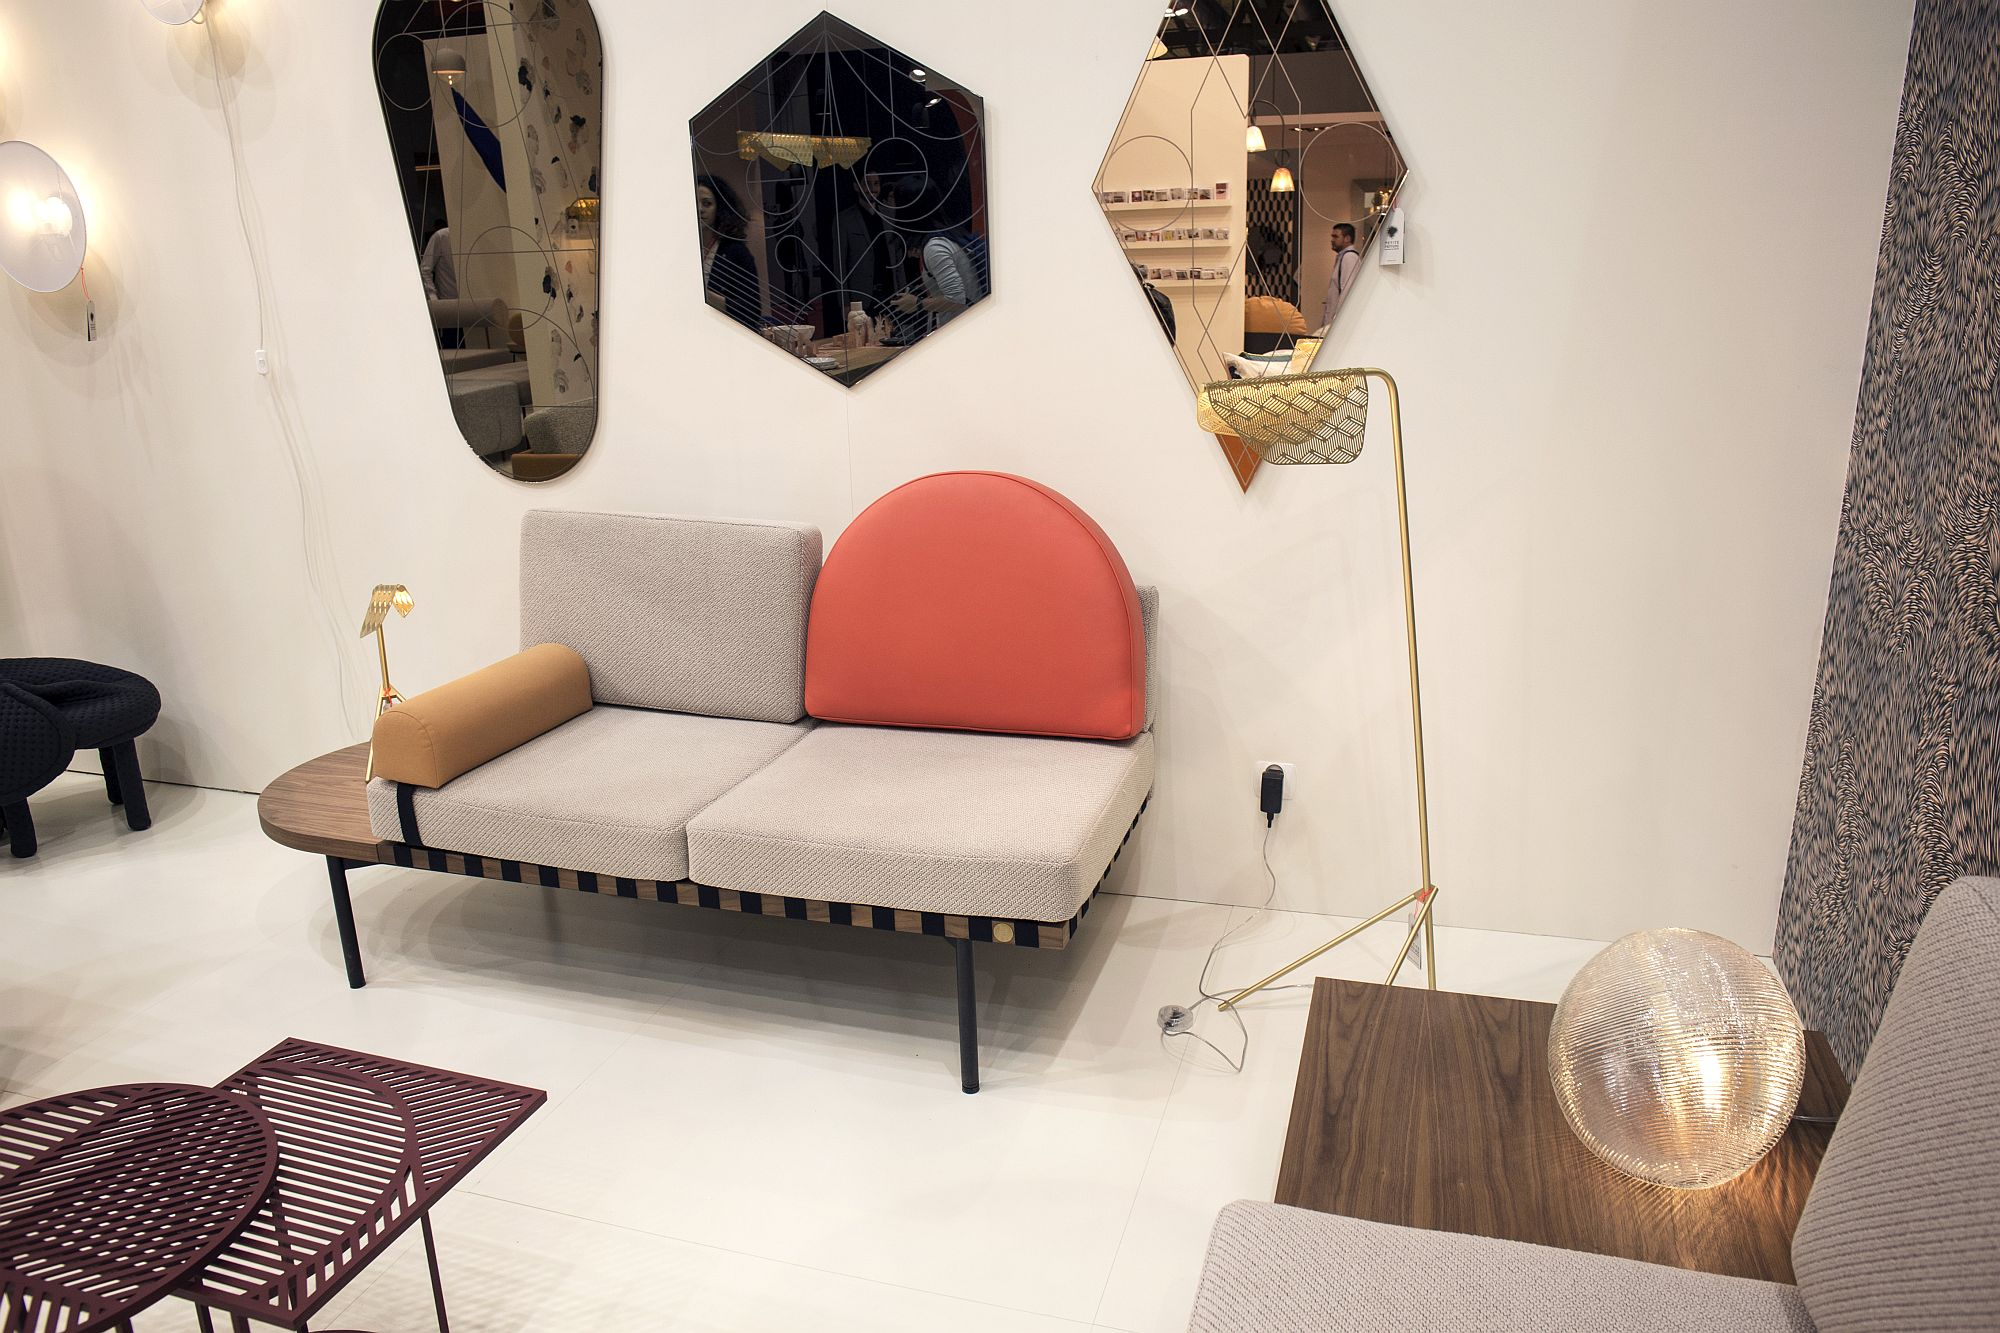 Mirrors-bring-geo-style-to-the-interior